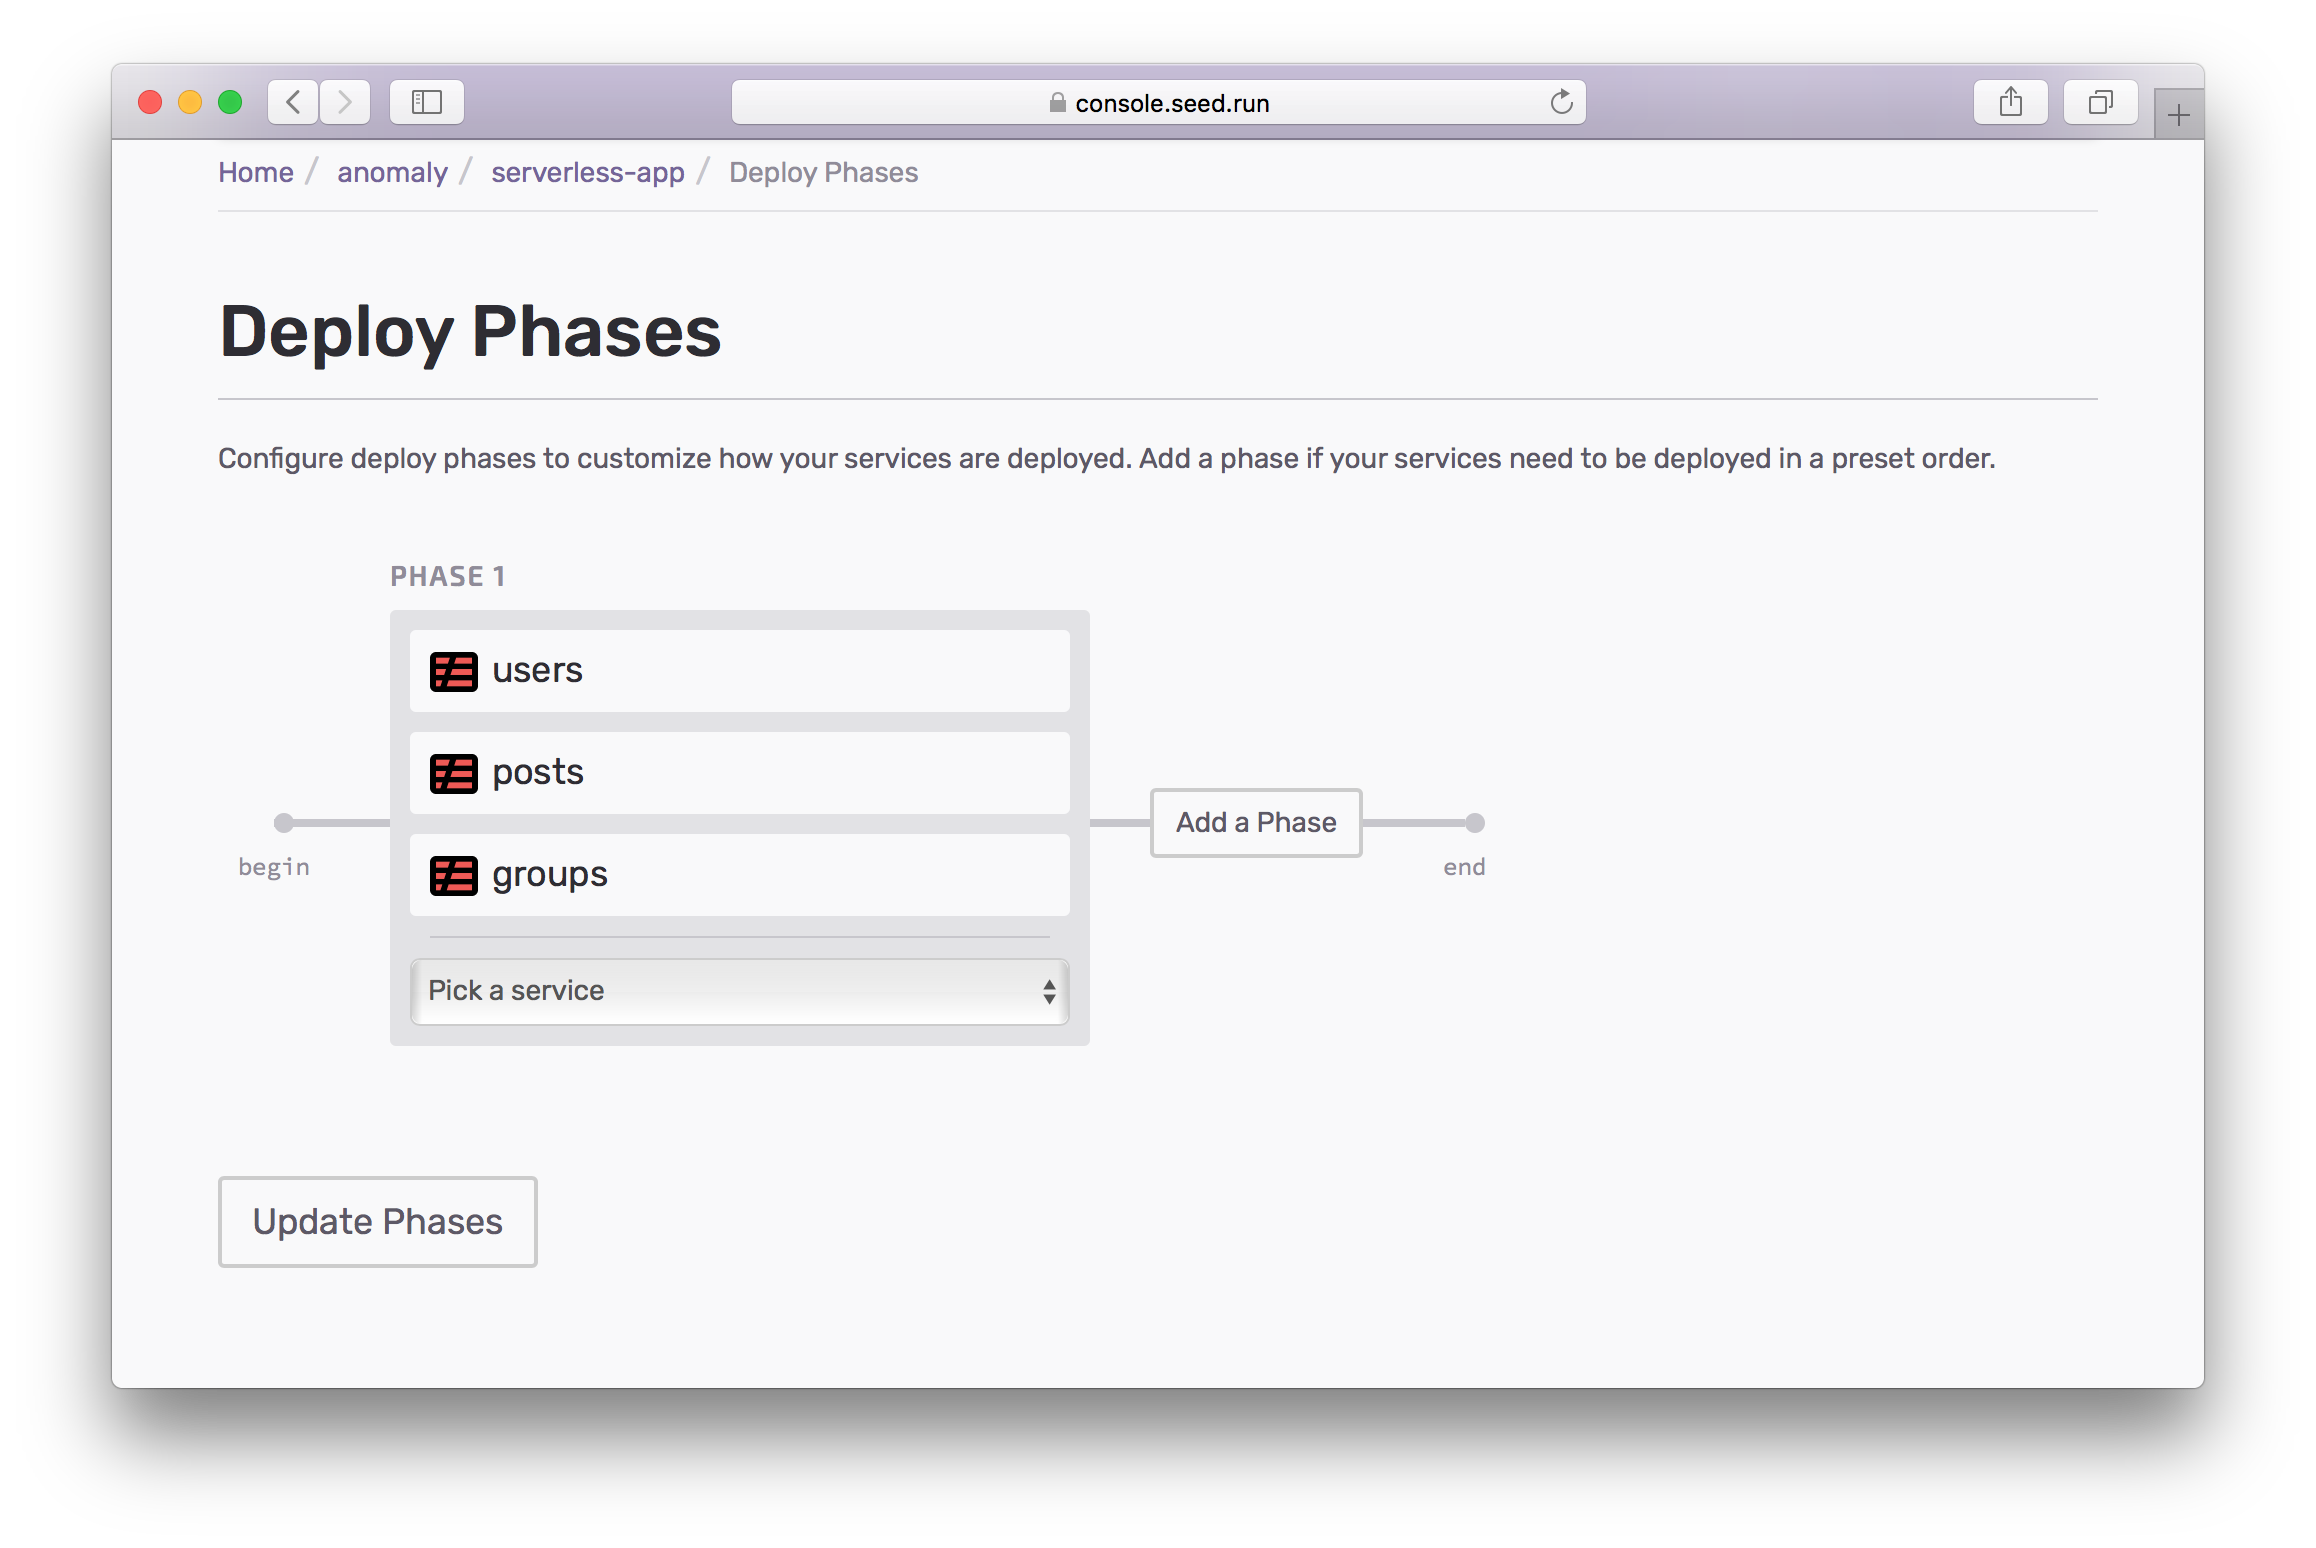 configure deploy phases